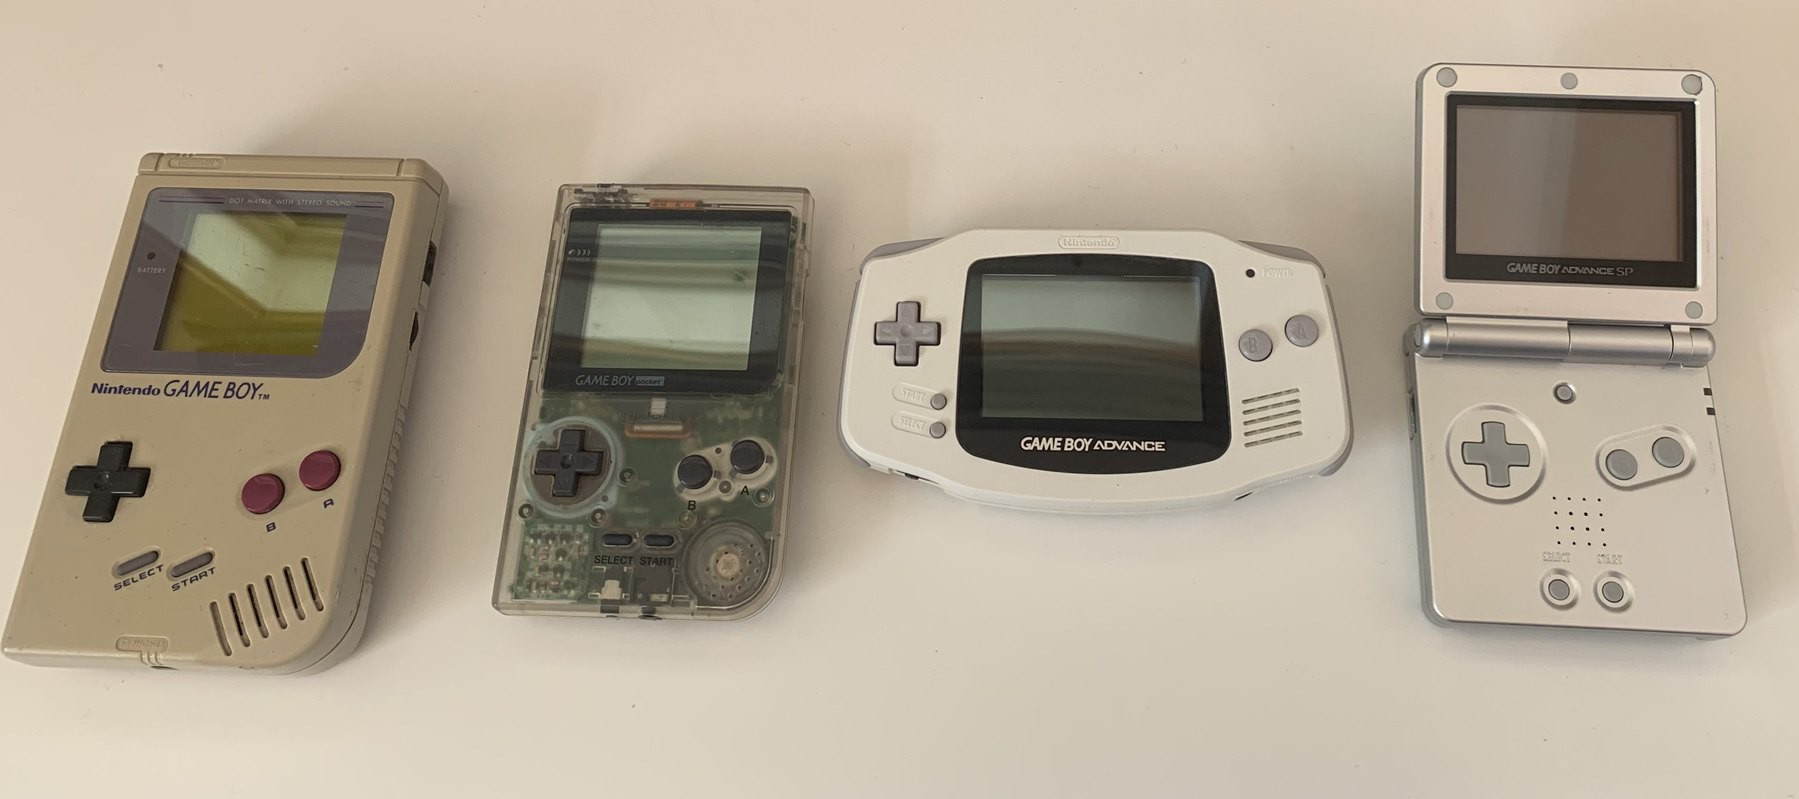 My remaining Game Boys - an Original, a transparent Pocket, an Original Game Boy Advance and a Game Boy Advance SP